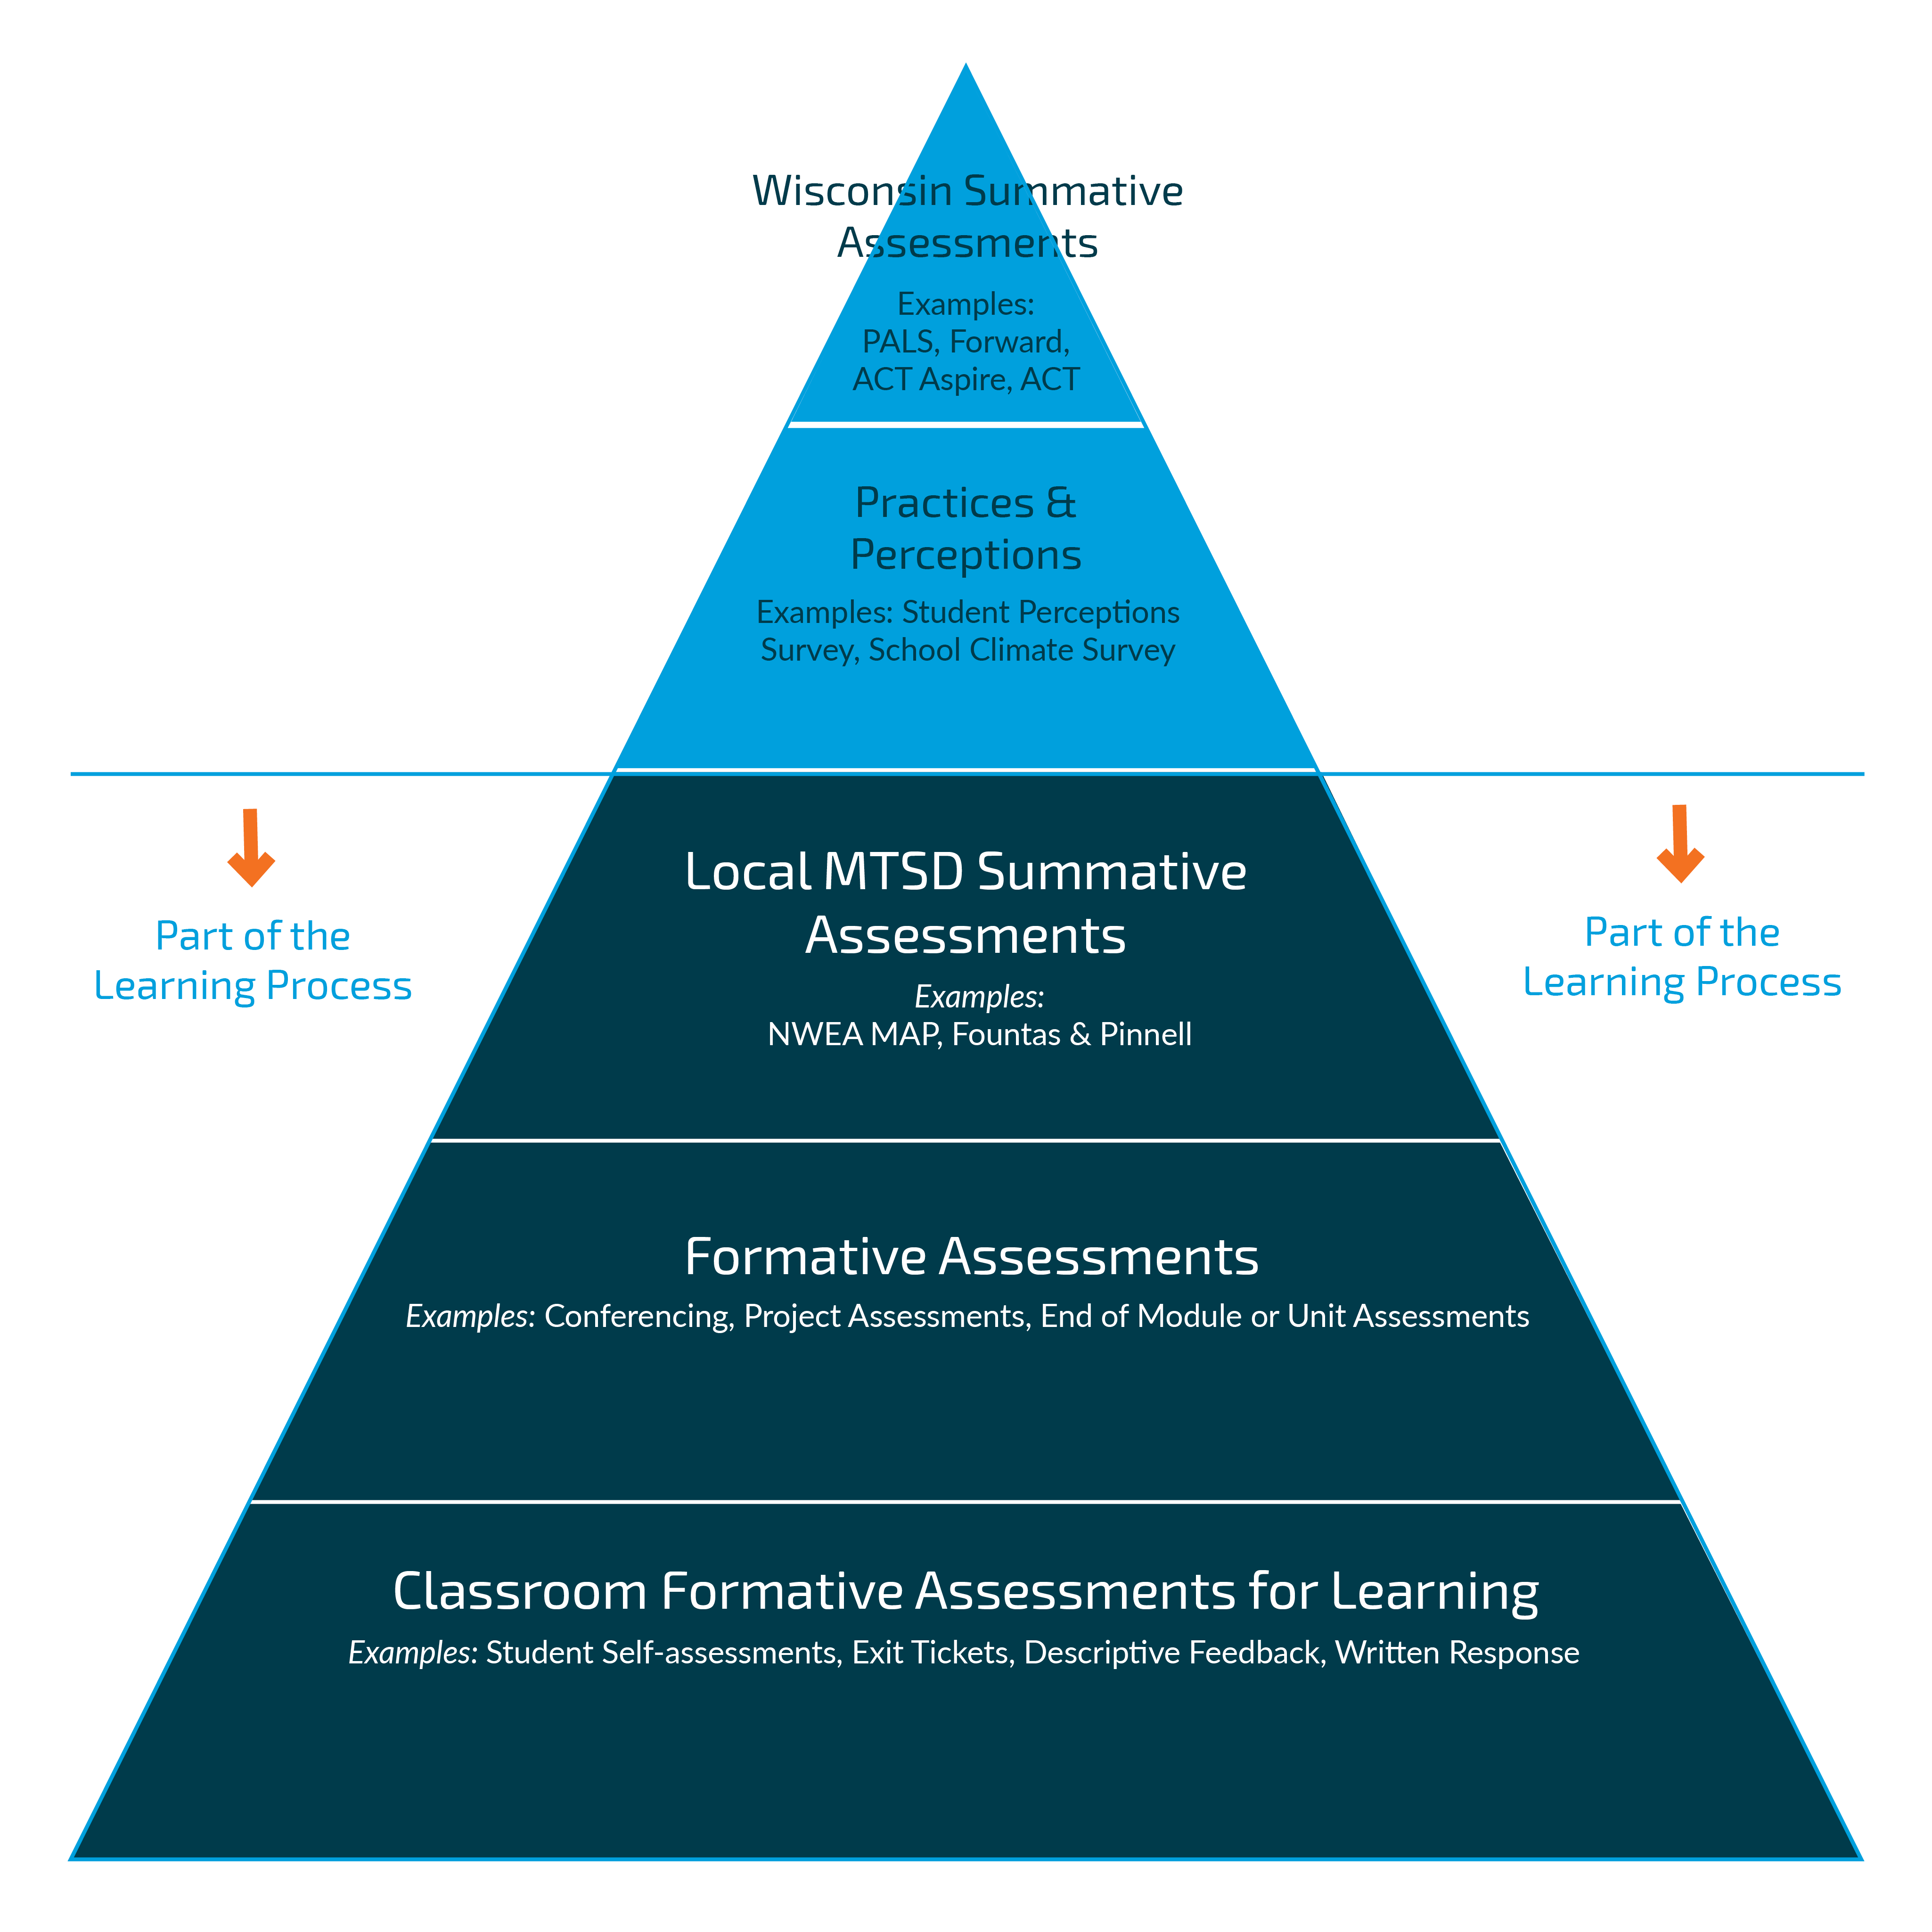 strengths and weaknesses of formal assessments